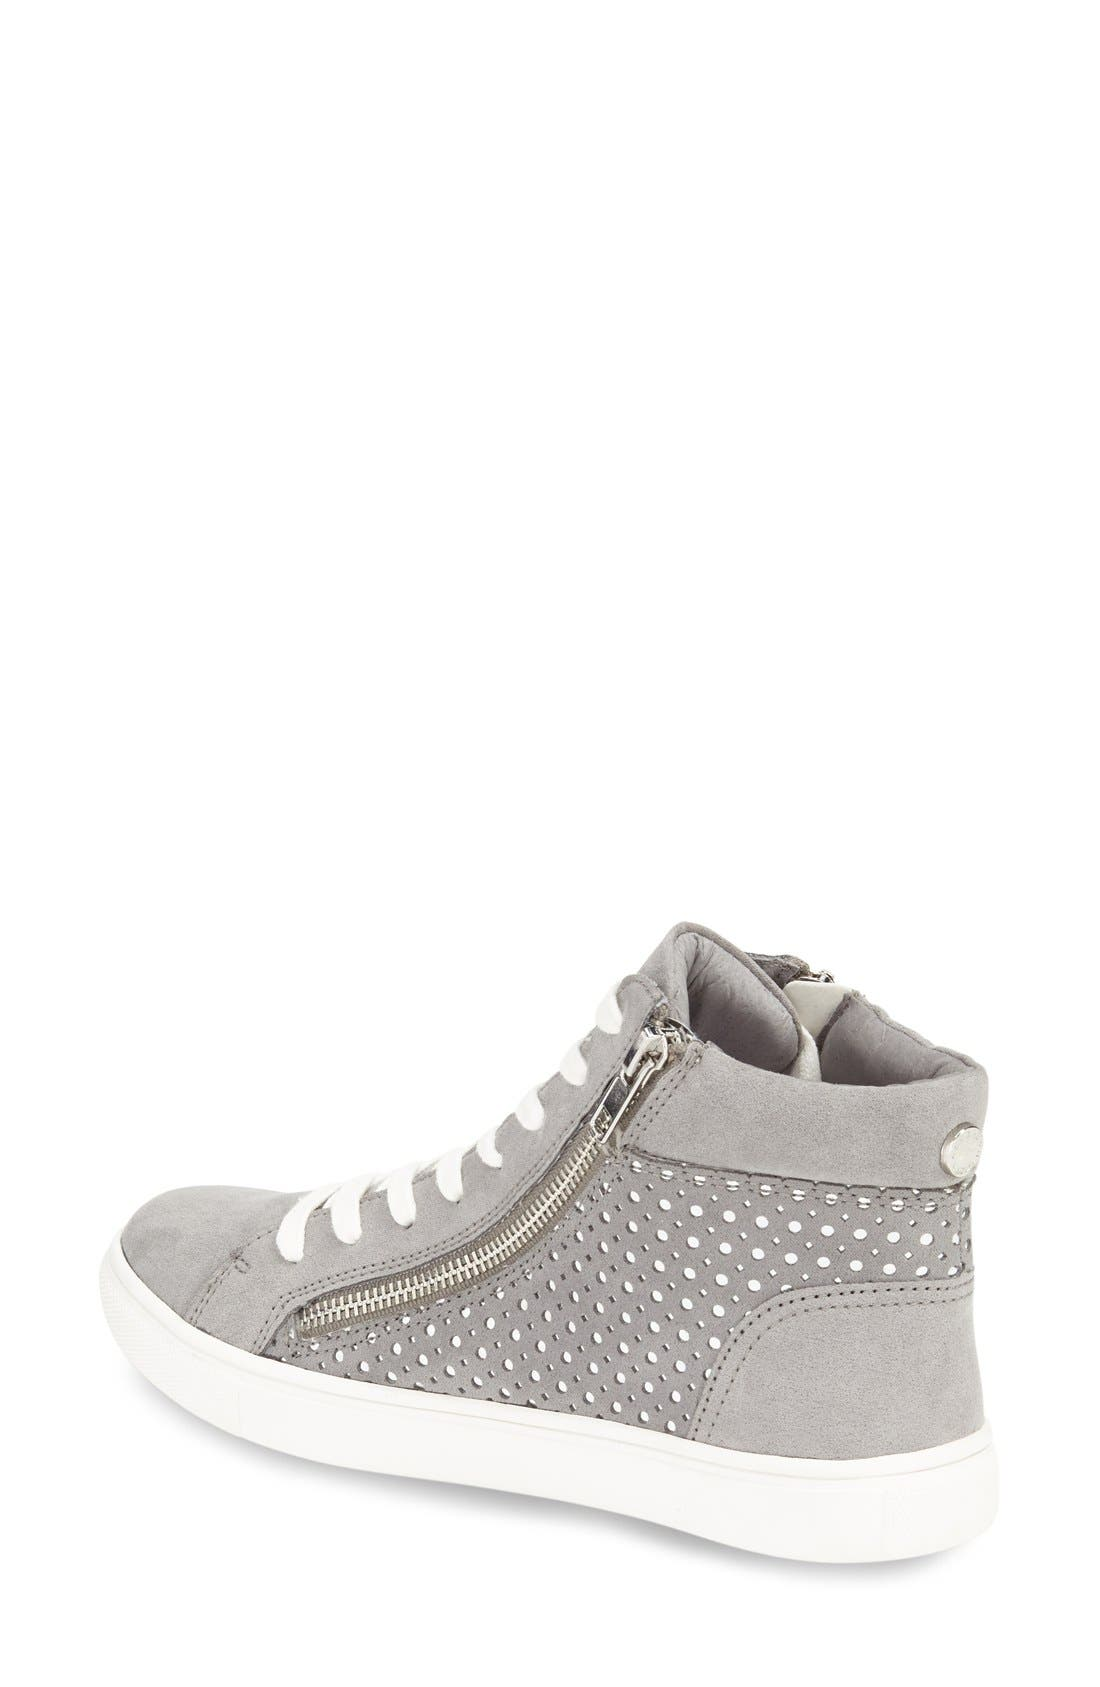 Alternate Image 2  - Steve Madden 'Elyka' Laser Cut High Top Sneaker (Women)